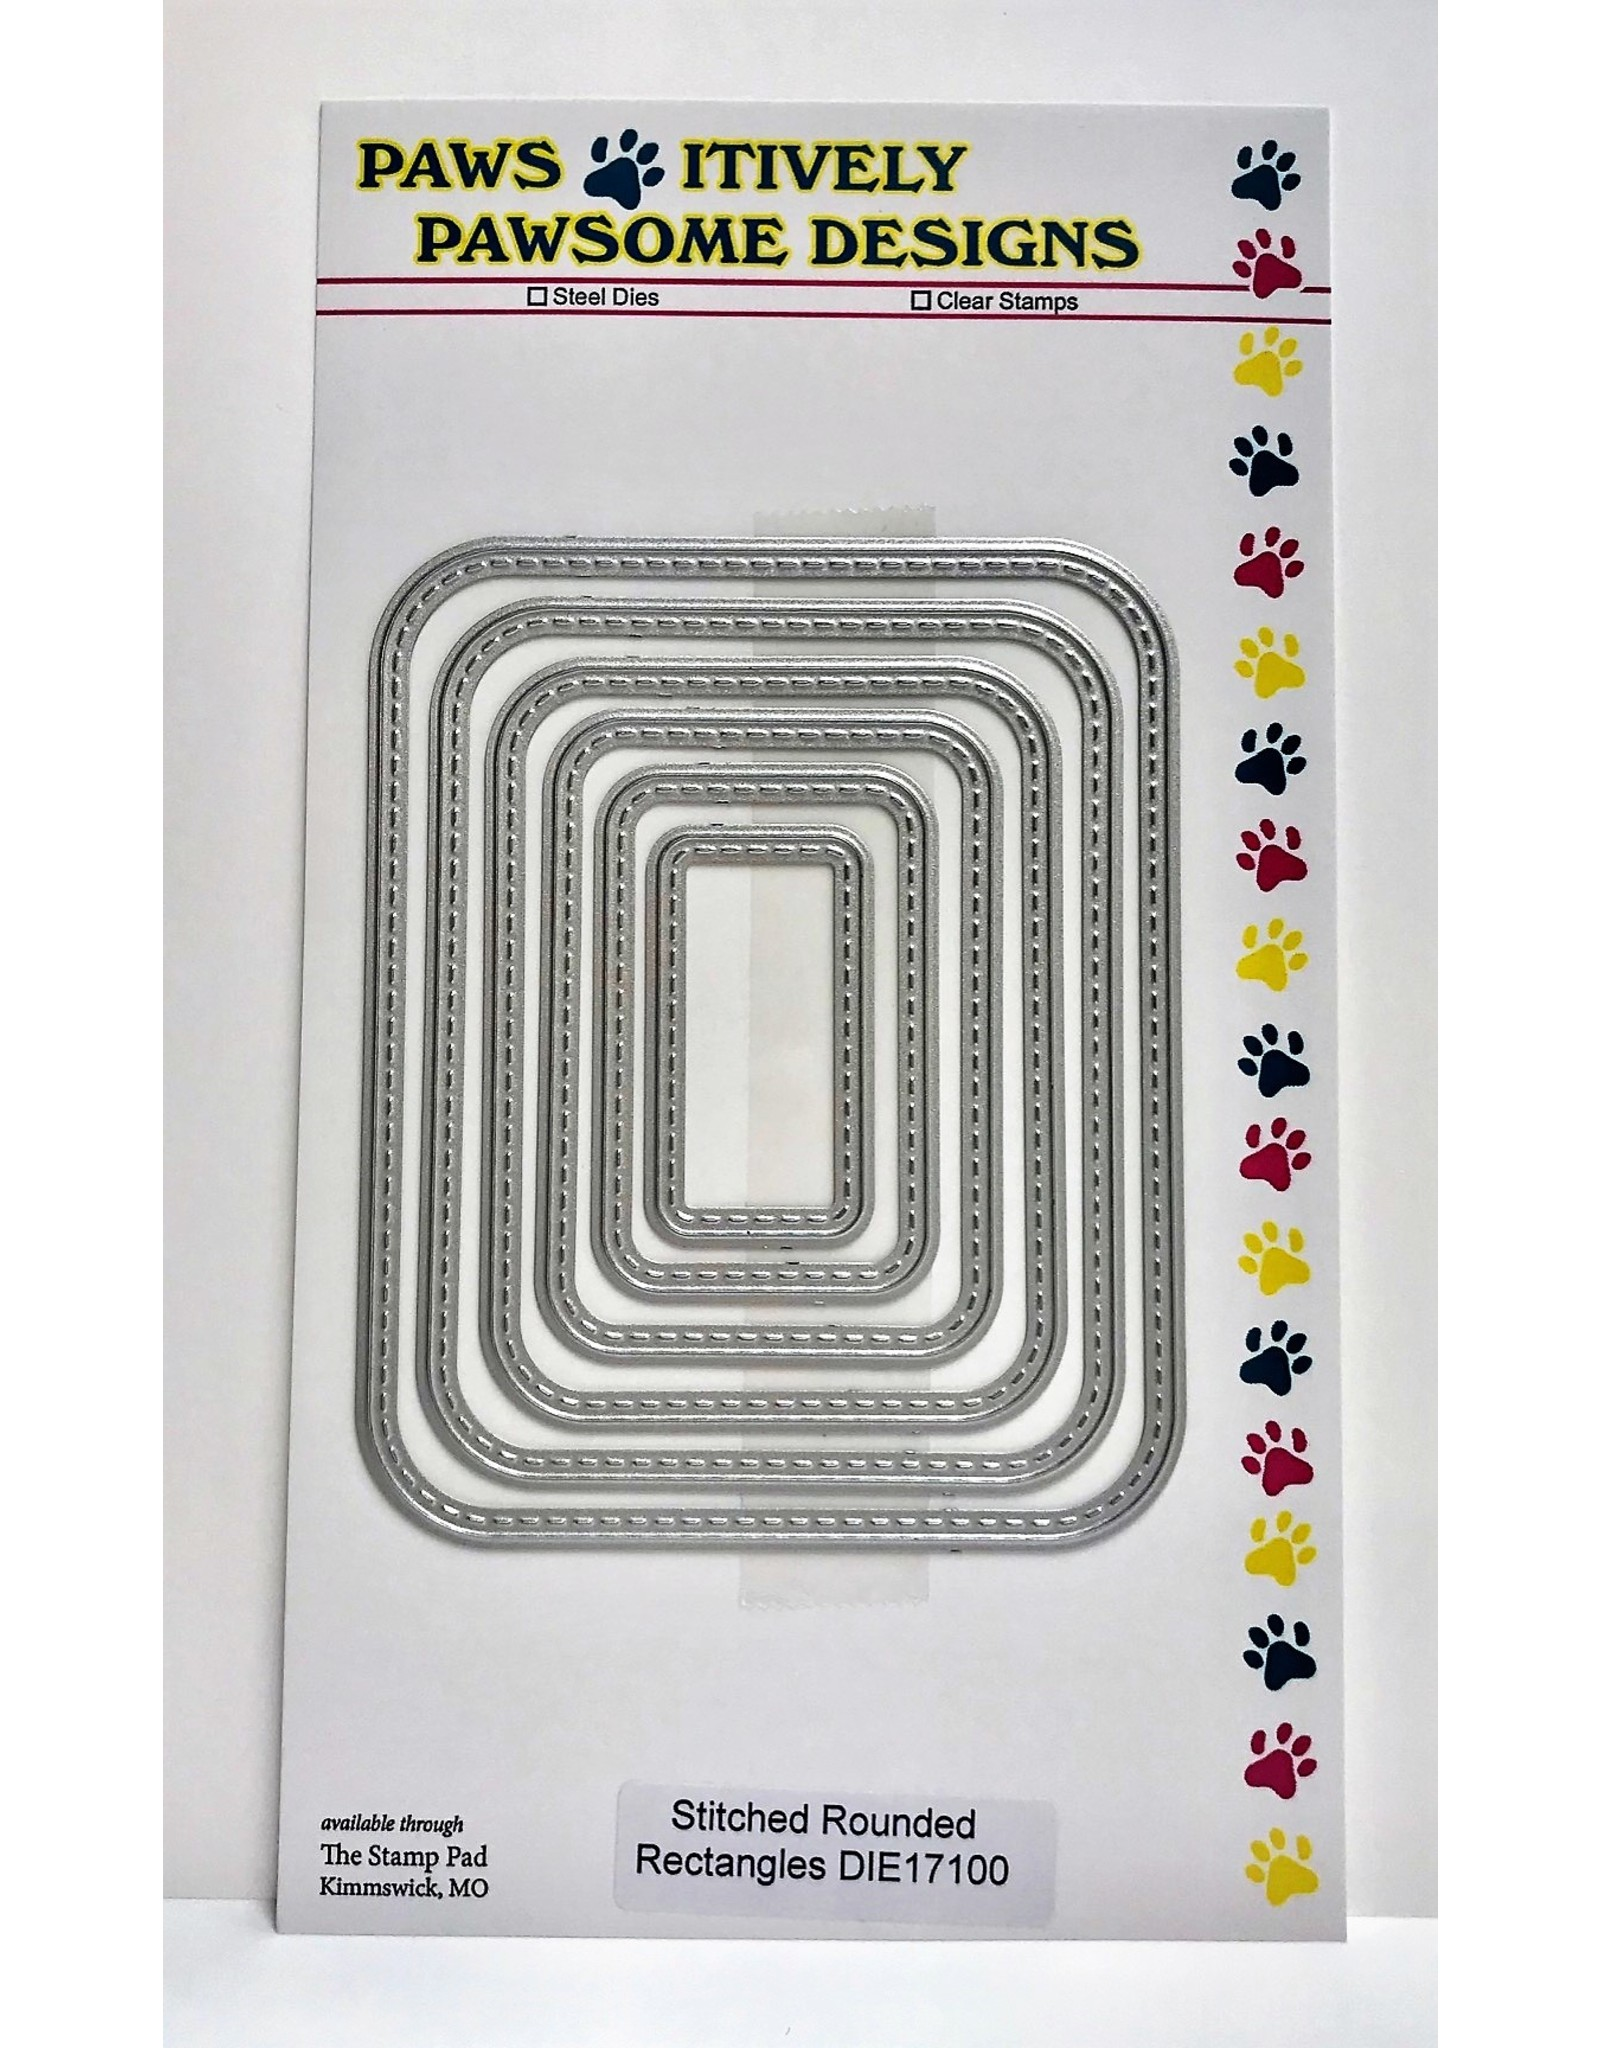 Paws-Itively Pawsome Designs Stitched Rounded Rectangles (PP) - Die